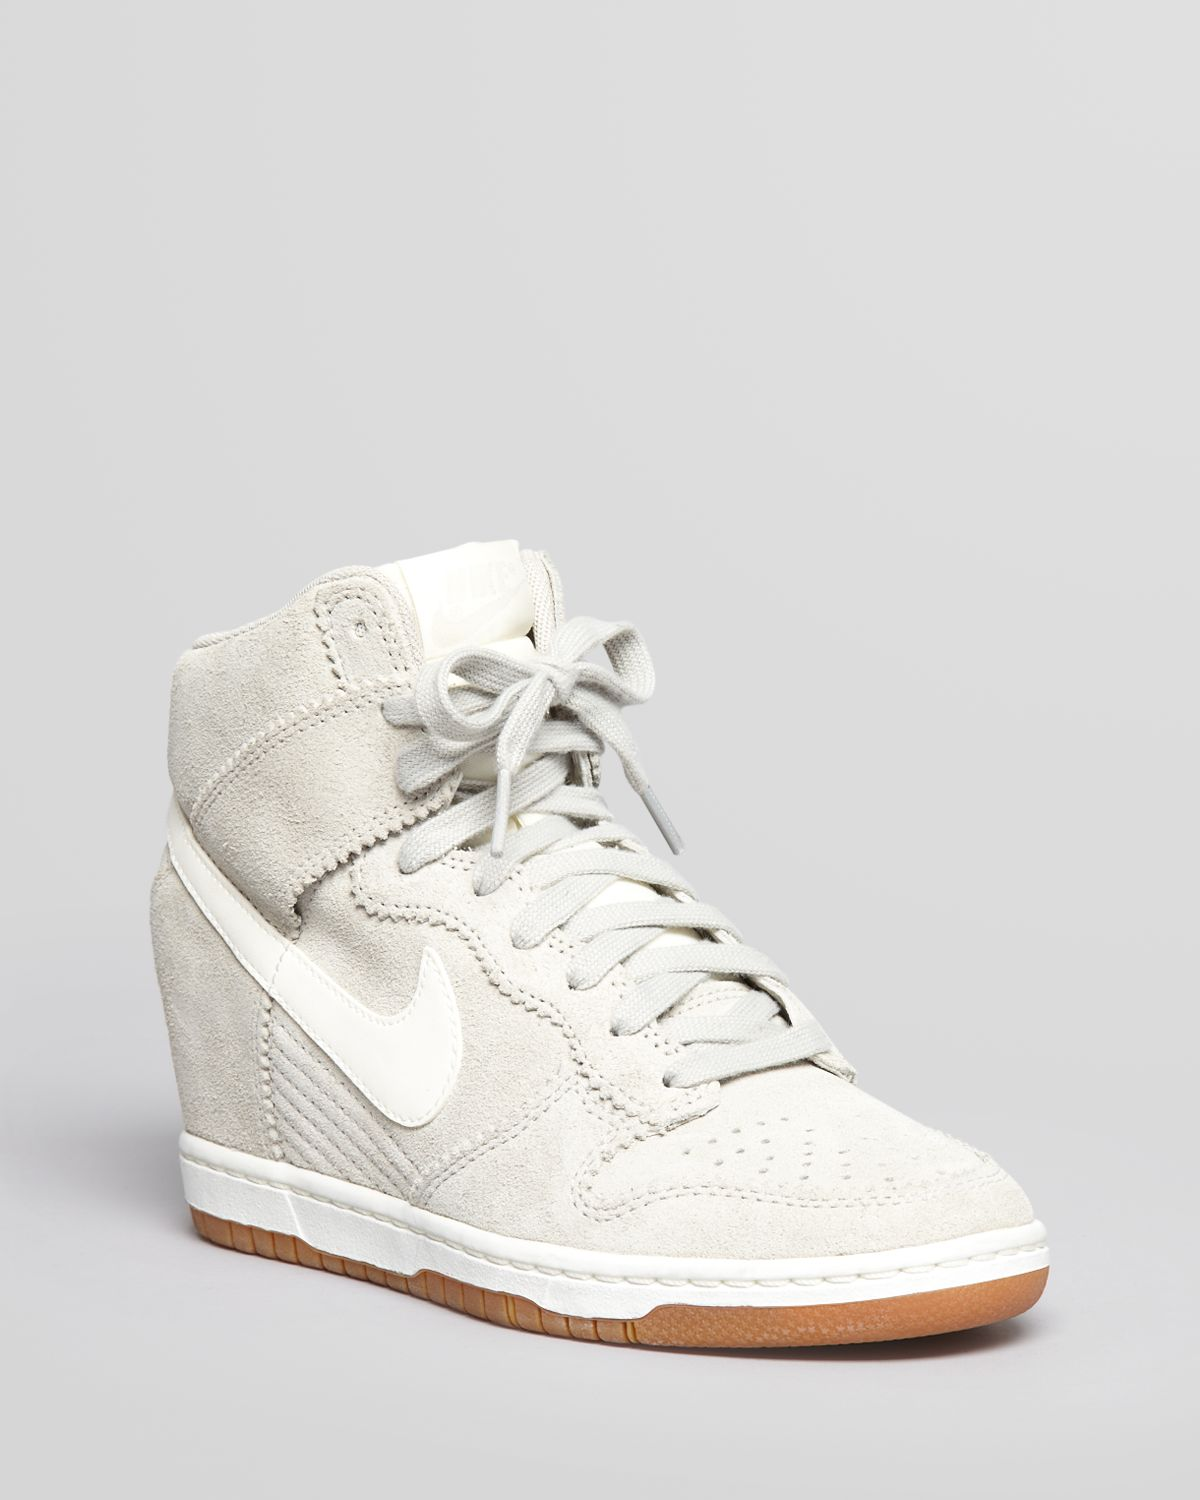 Lyst - Nike High Top Wedge Sneakers Dunk Sky Hi in White